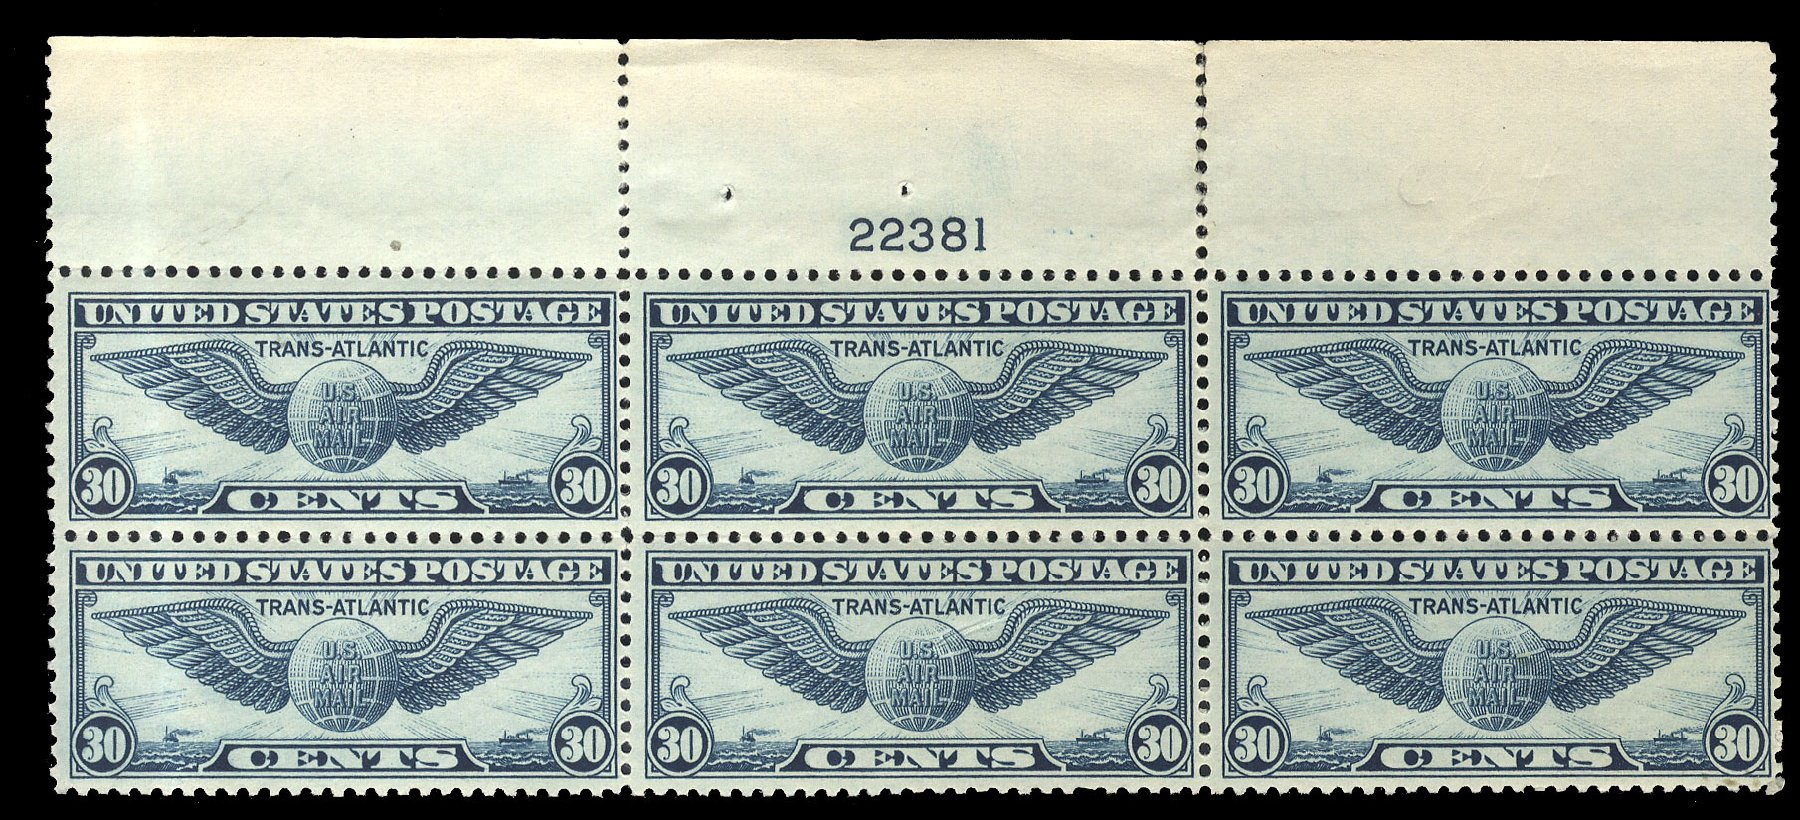 Value of US Stamp Scott Cat. C24 - 30c 1939 Air Winged Globe. Cherrystone Auctions, Mar 2015, Sale 201503, Lot 78